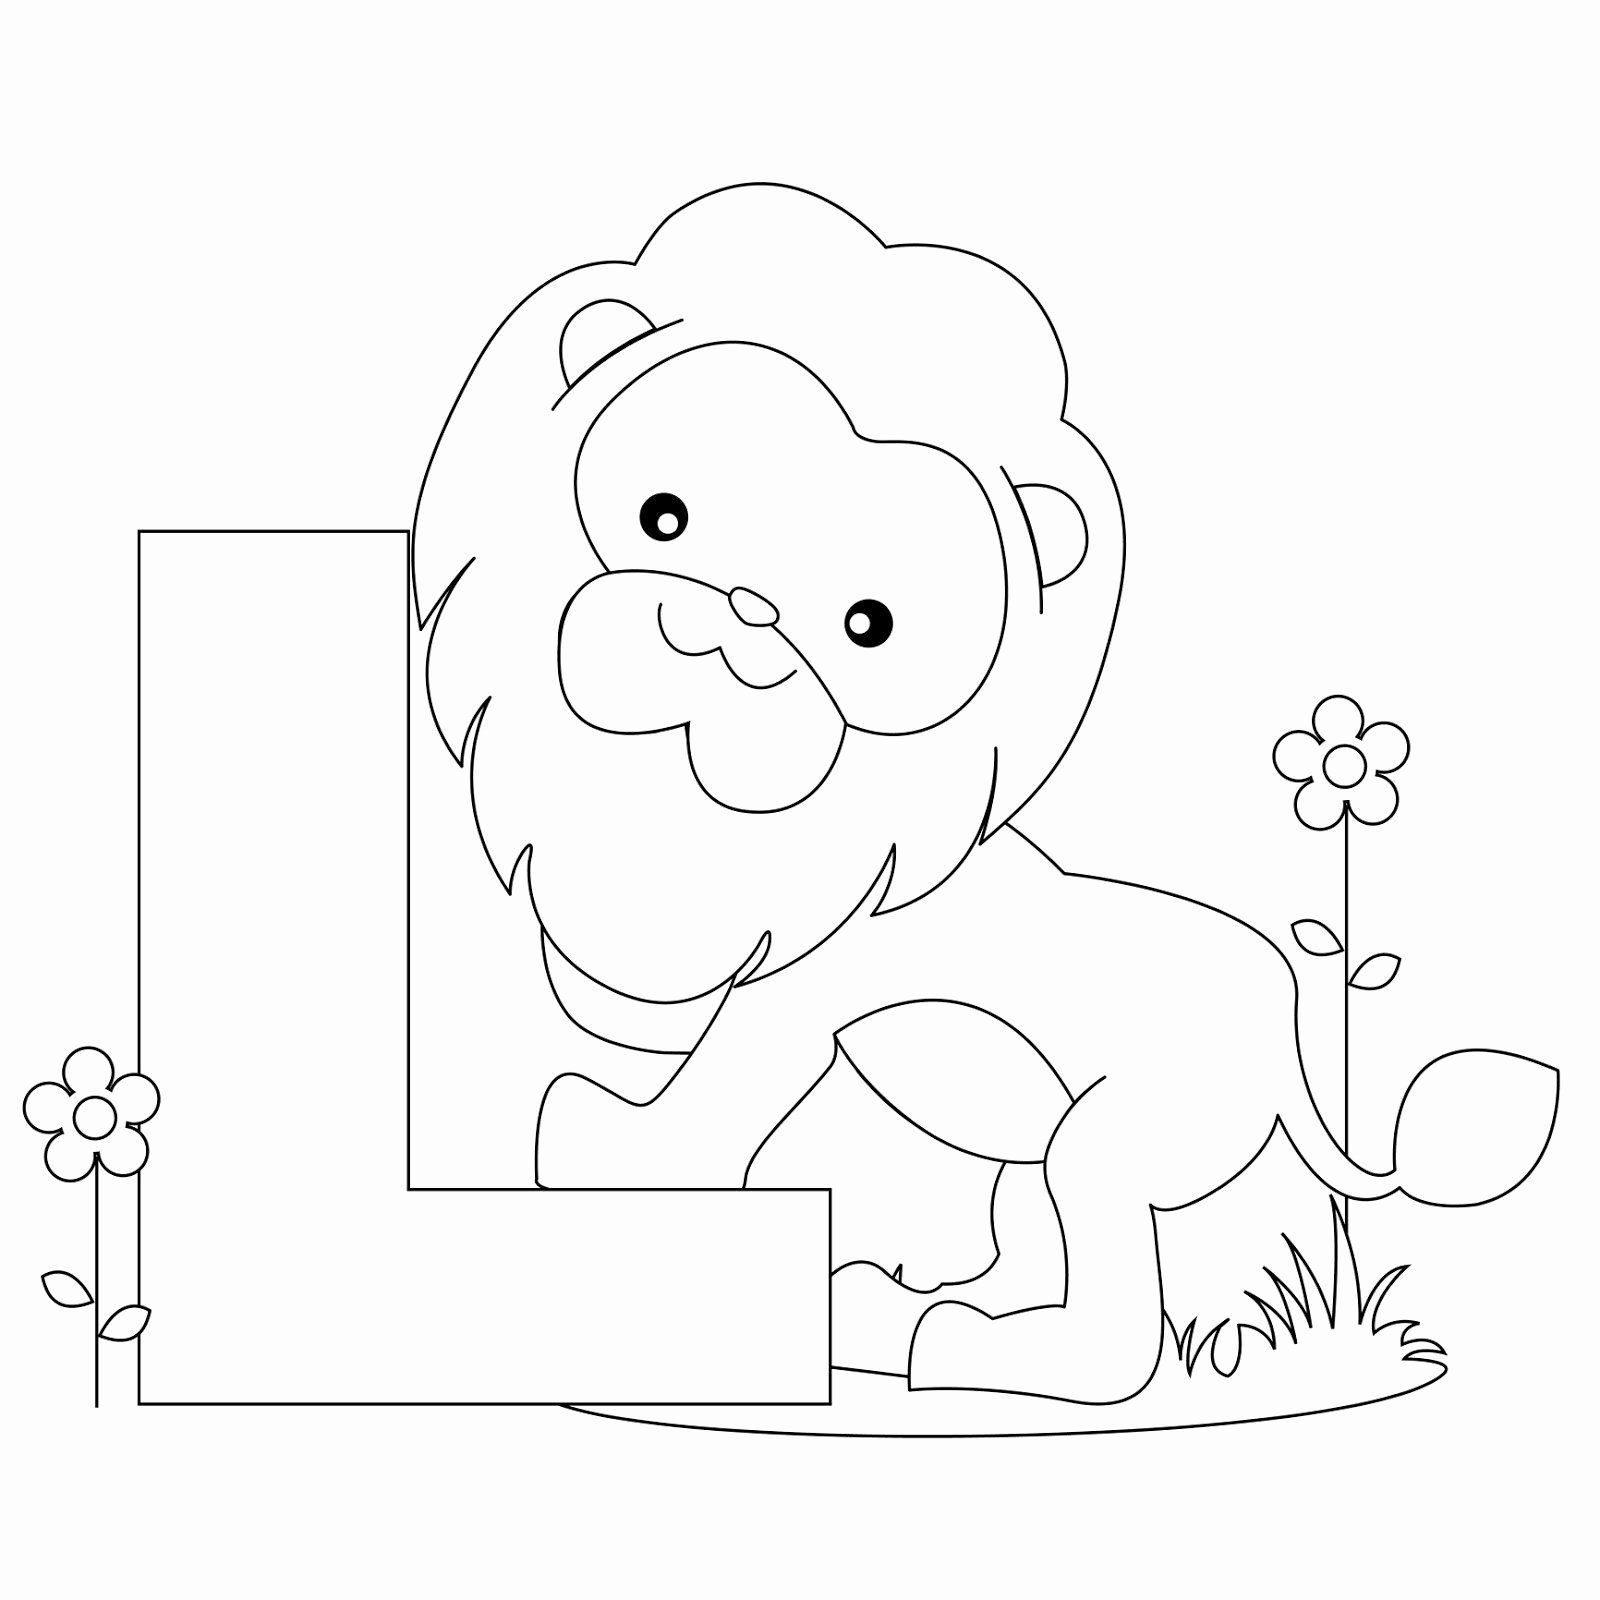 Alphabet Coloring Pages Momjunction In 2020 Alphabet Coloring Pages Letter A Coloring Pages Alphabet Coloring